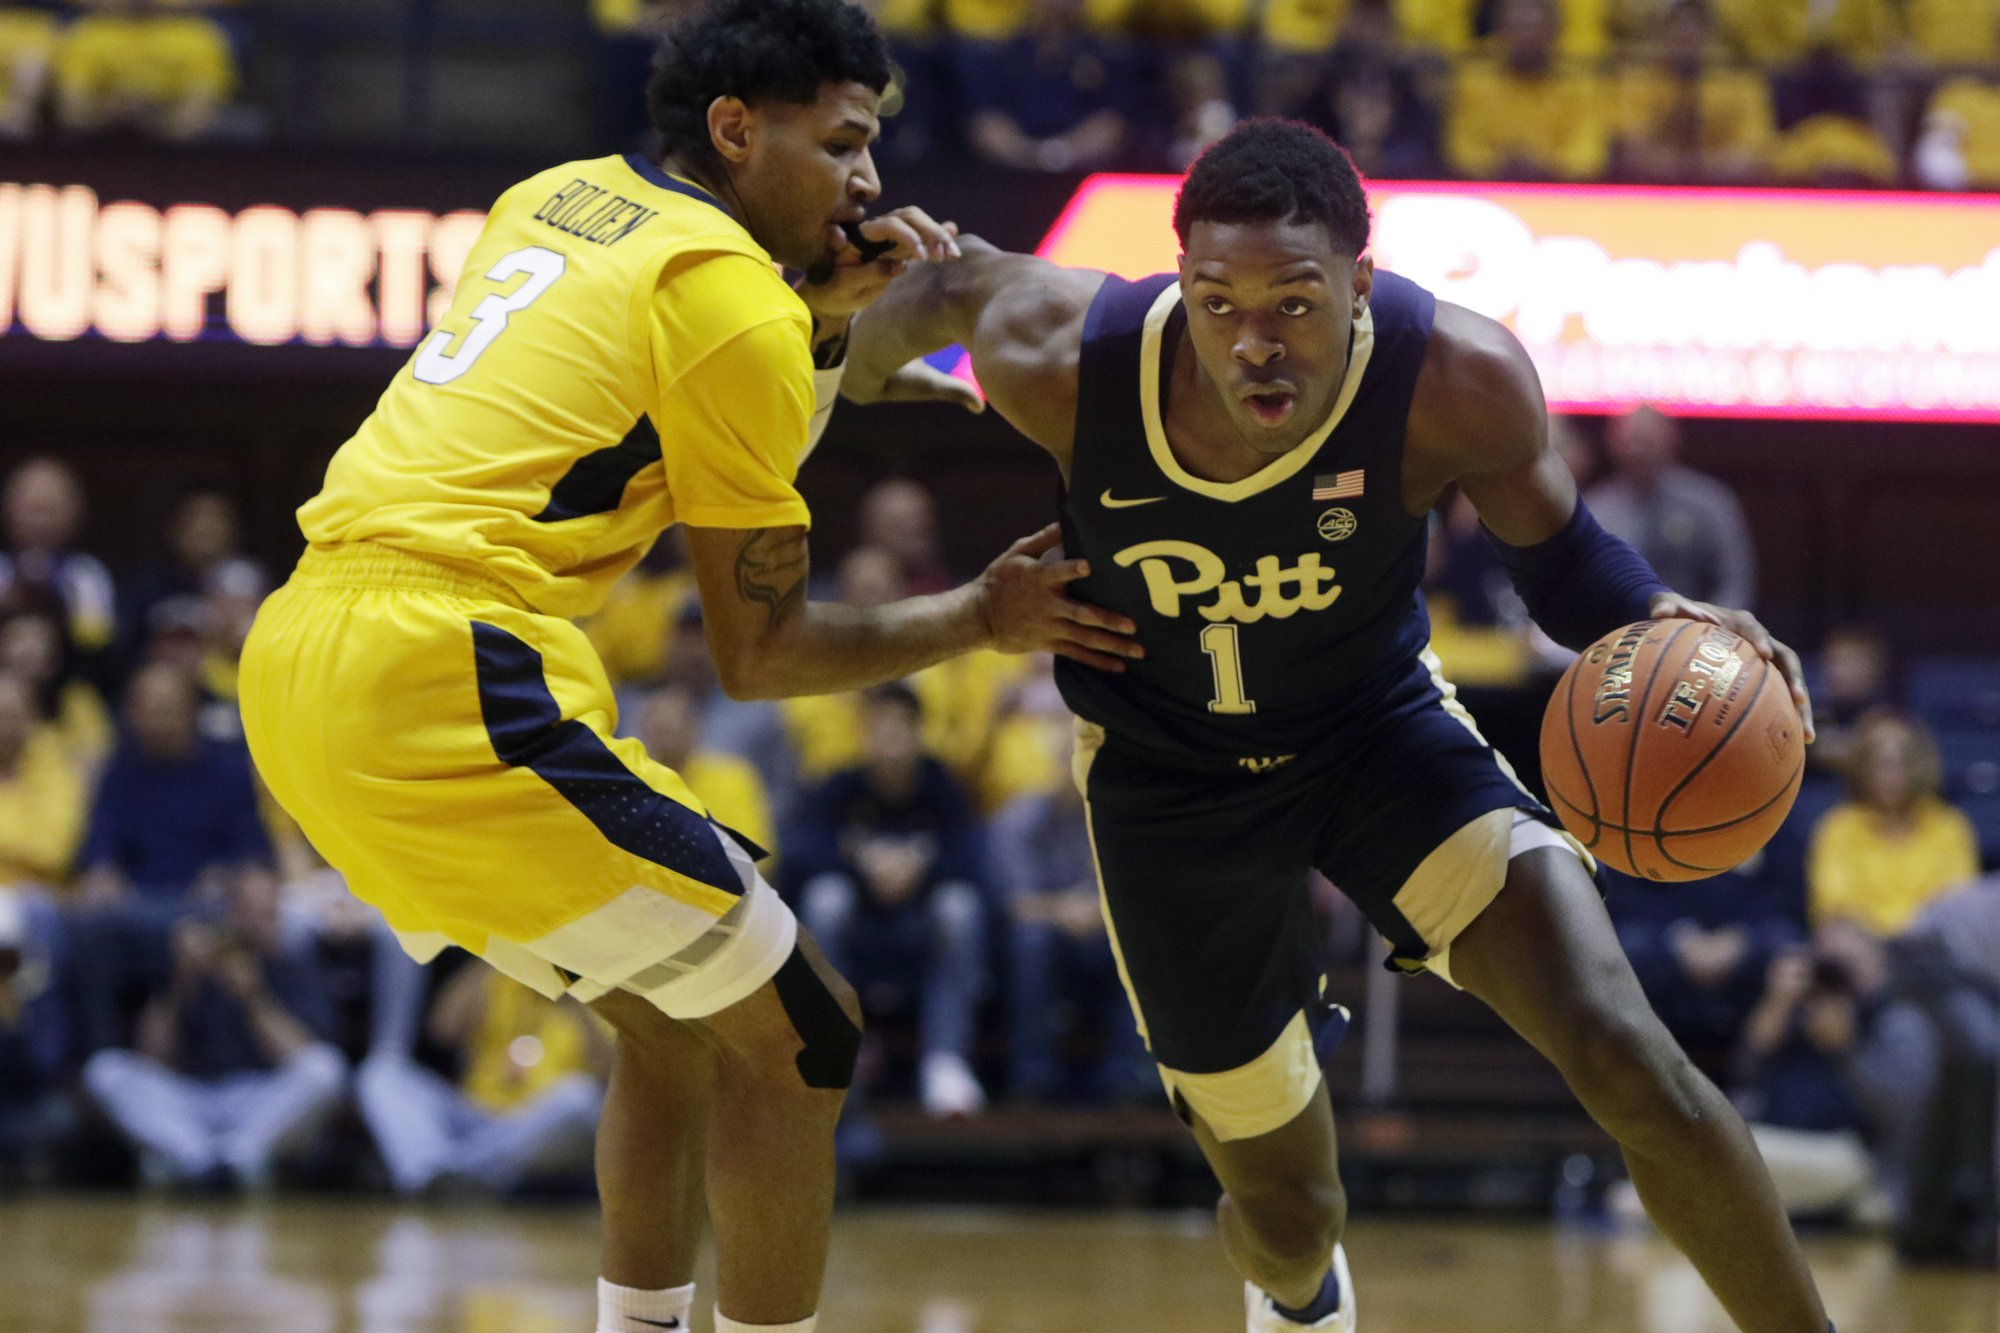 WVU Edges Pitt 69-59 in Backyard Brawl